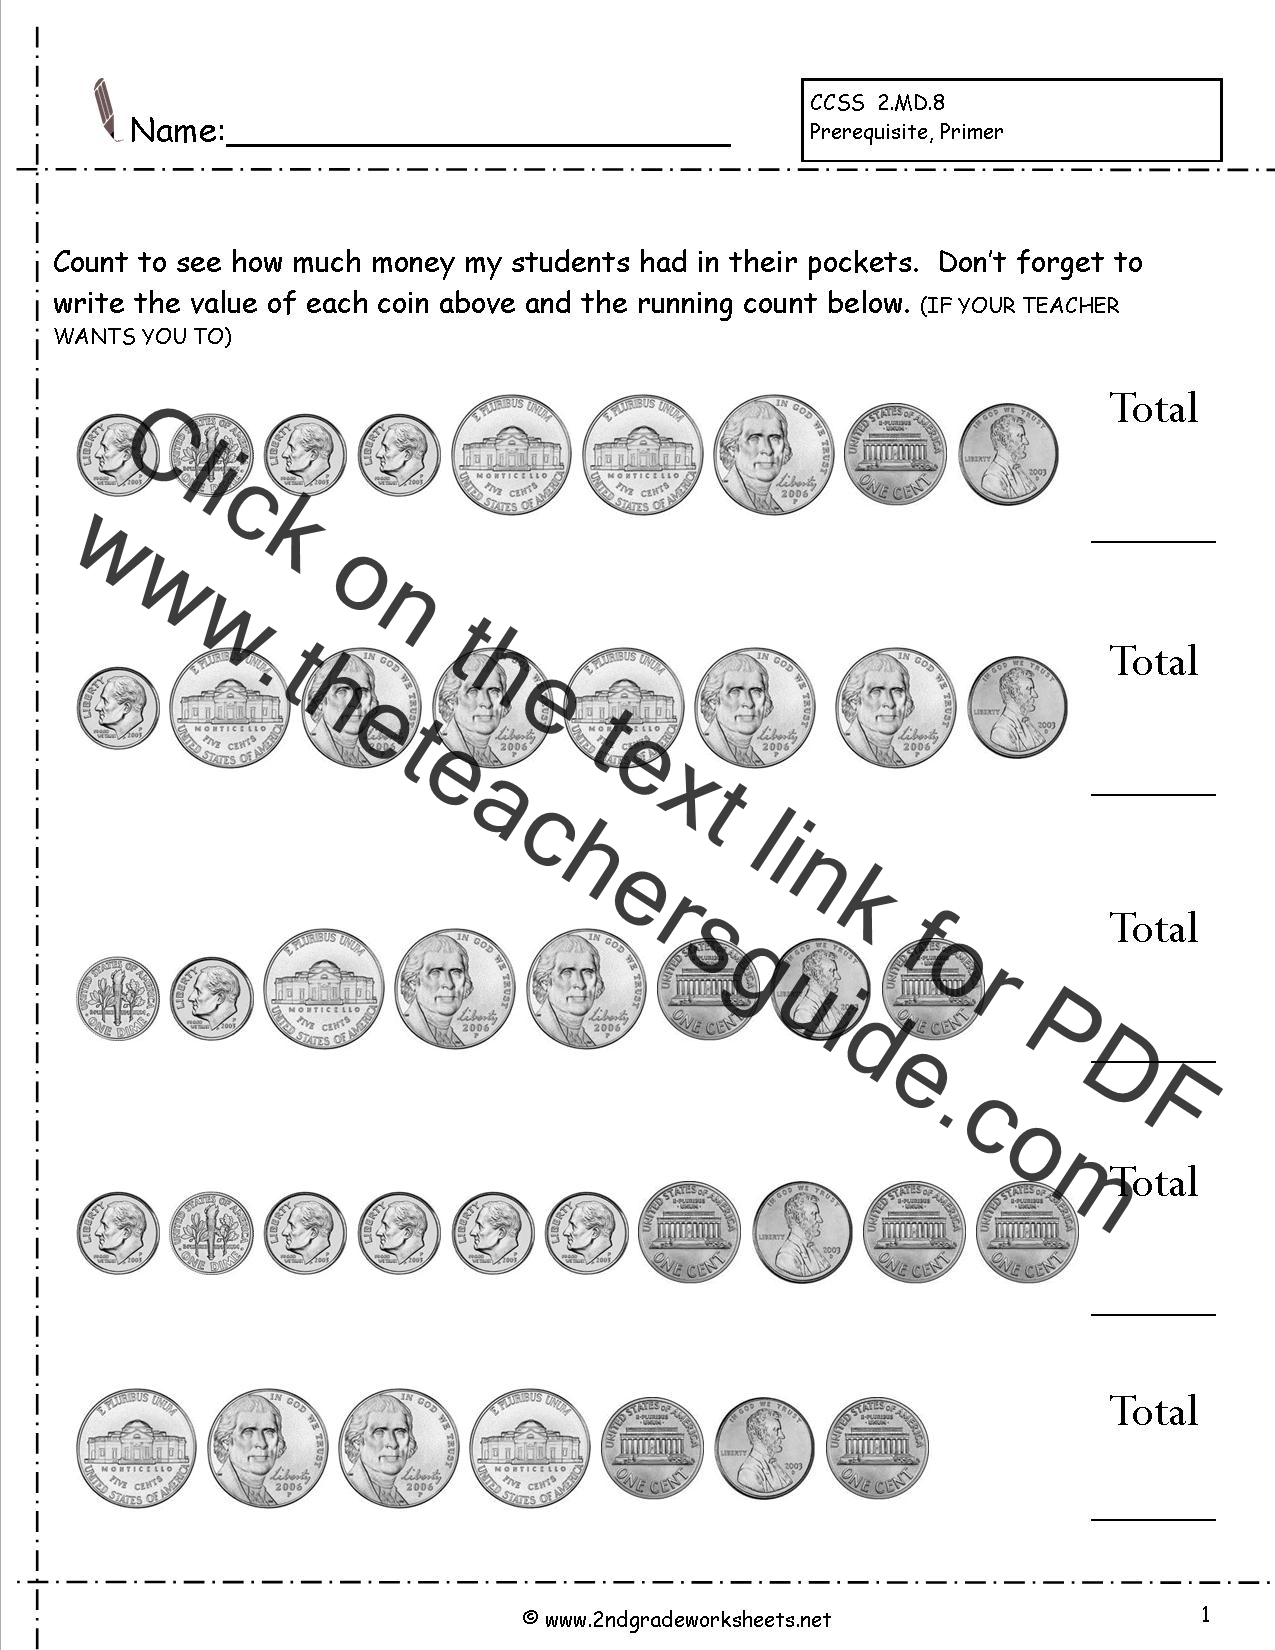 Worksheets Counting Coins Worksheets counting coins and money worksheets printouts worksheet